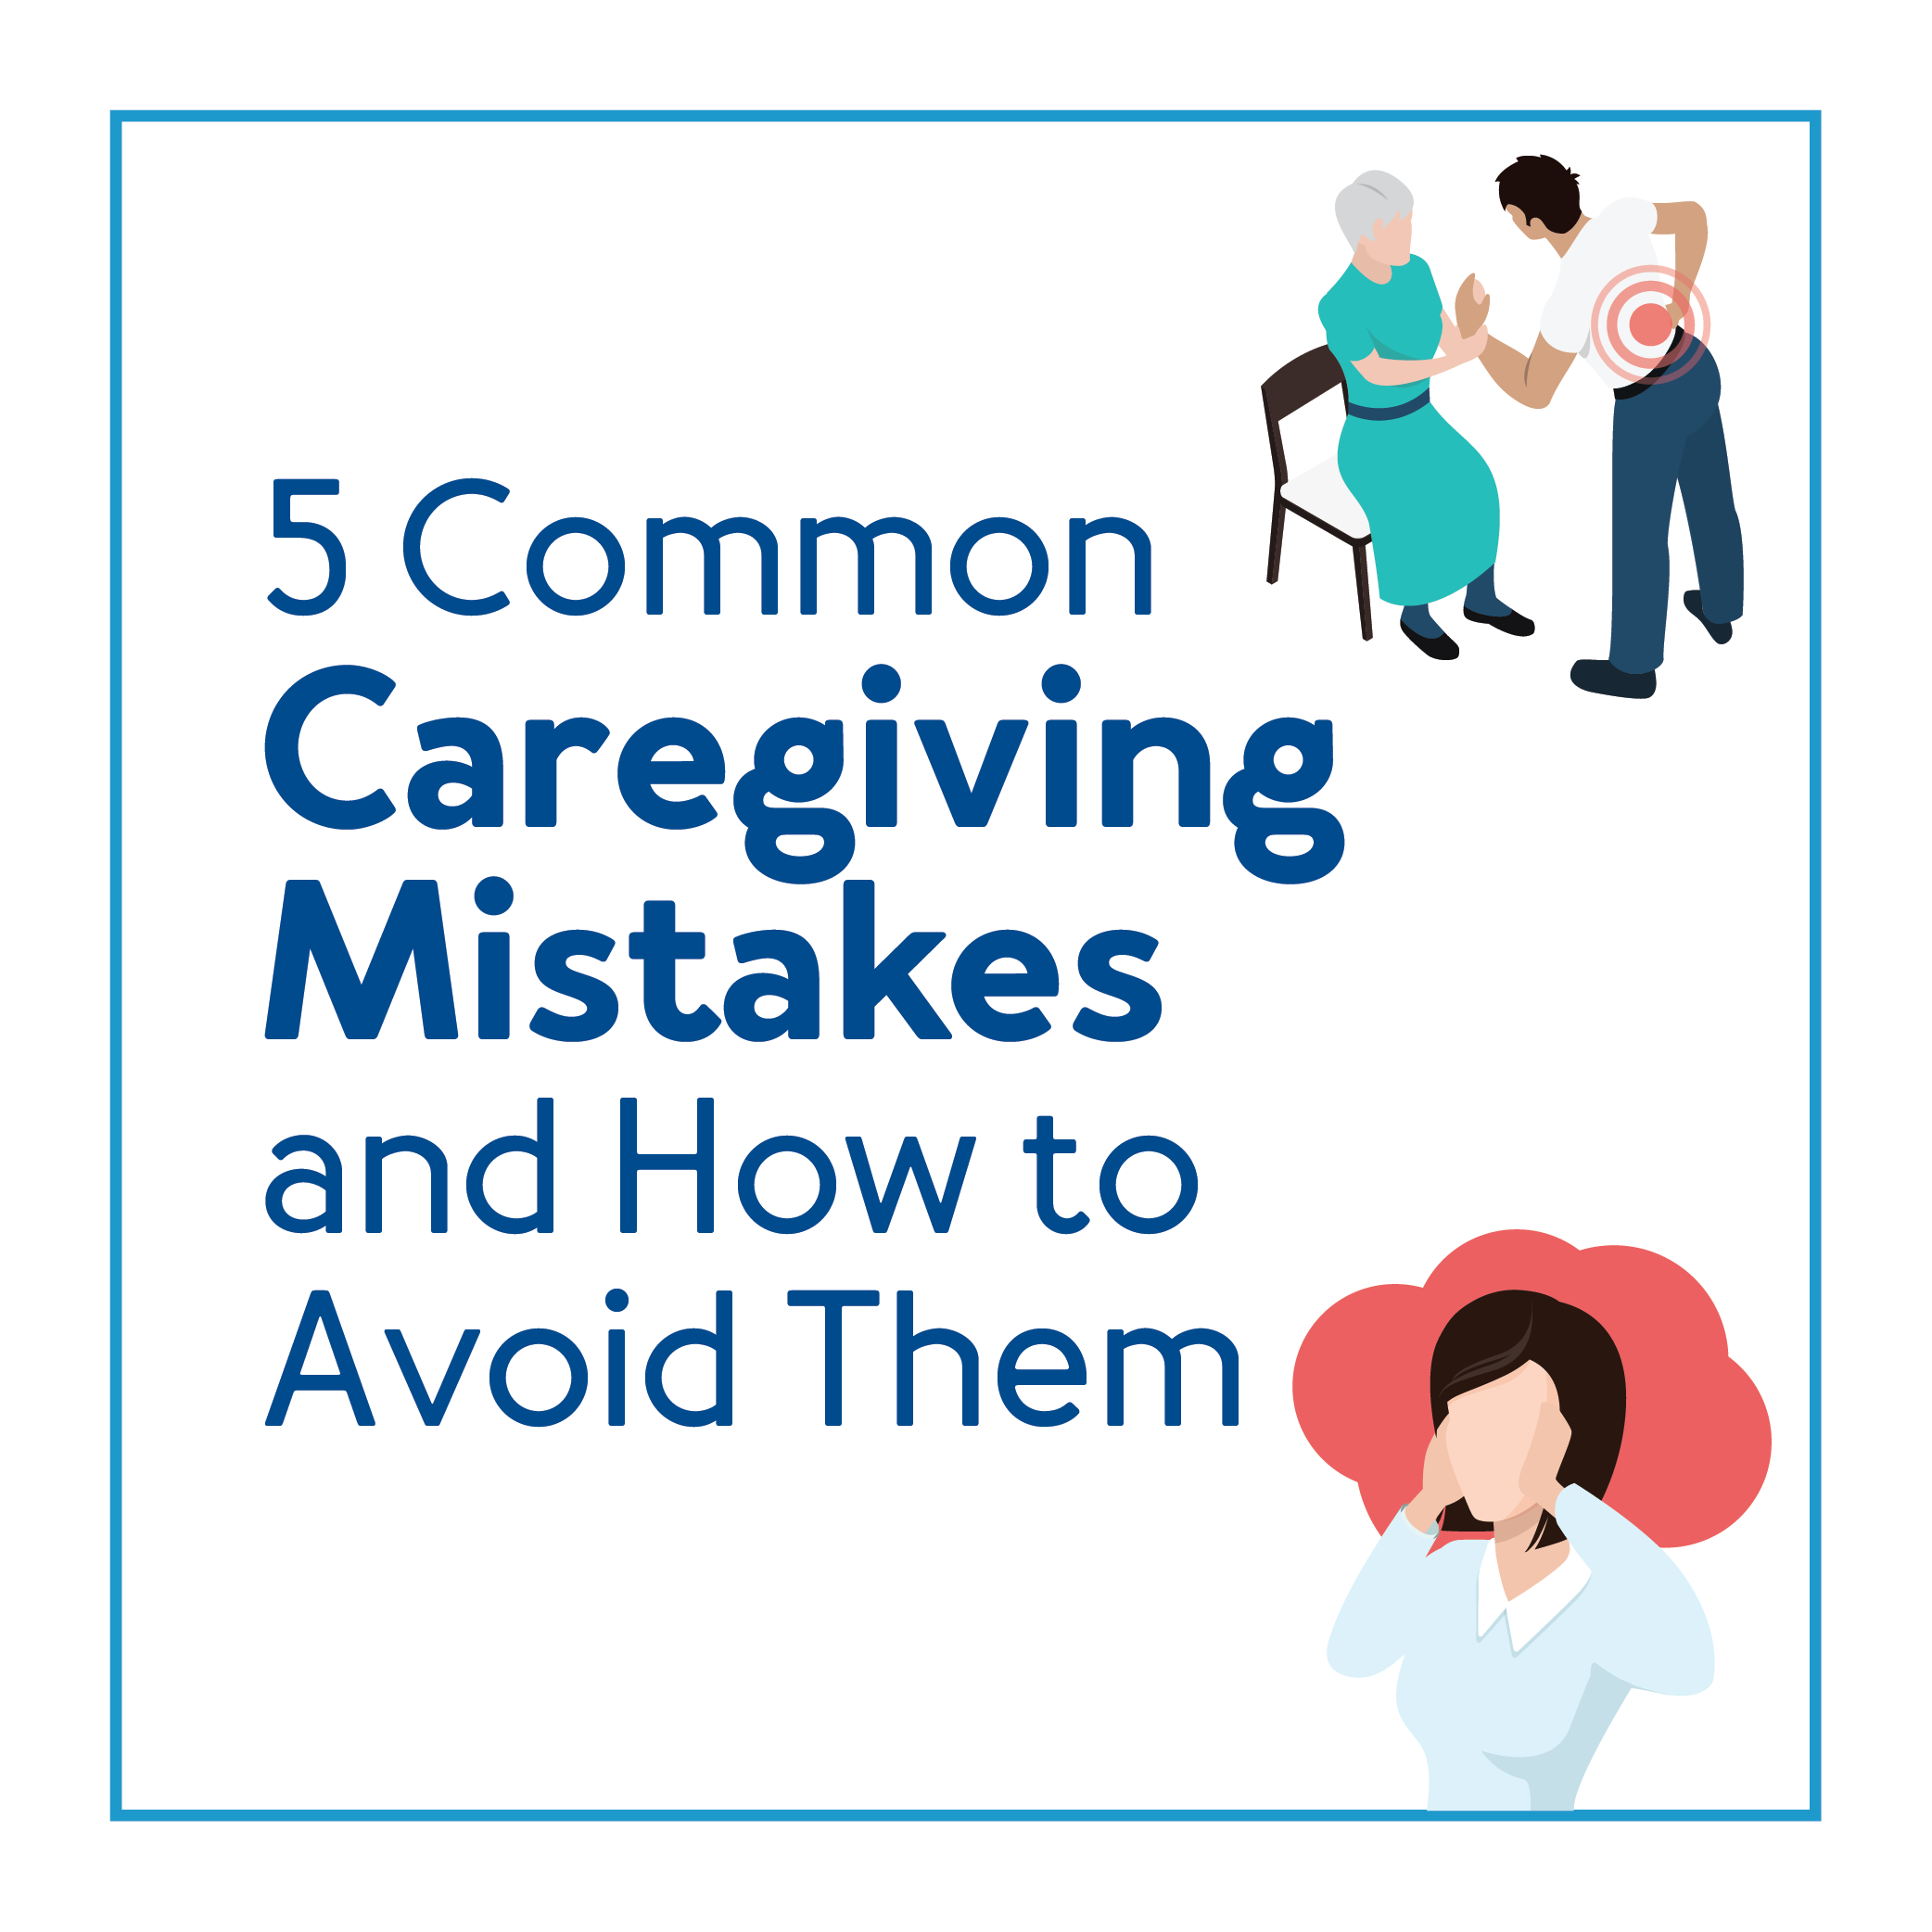 Five Common Caregiving Mistakes and How to Avoid Them